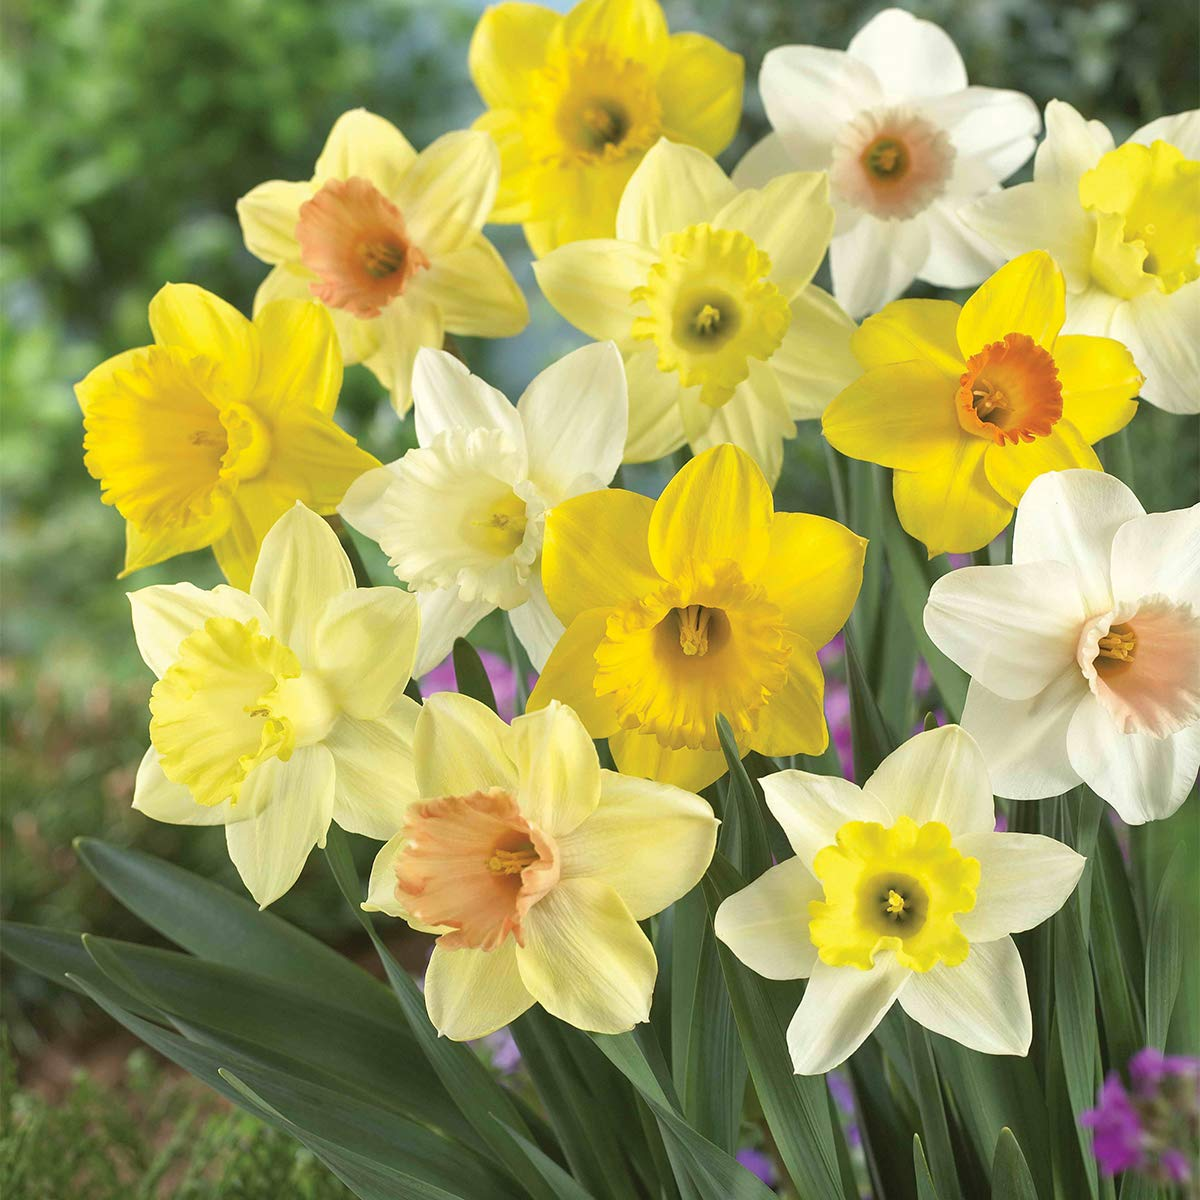 Burpee's 100 Days Daffodil - 25 Large Flower Bulbs   Yellow, Gold, and White by Burpee